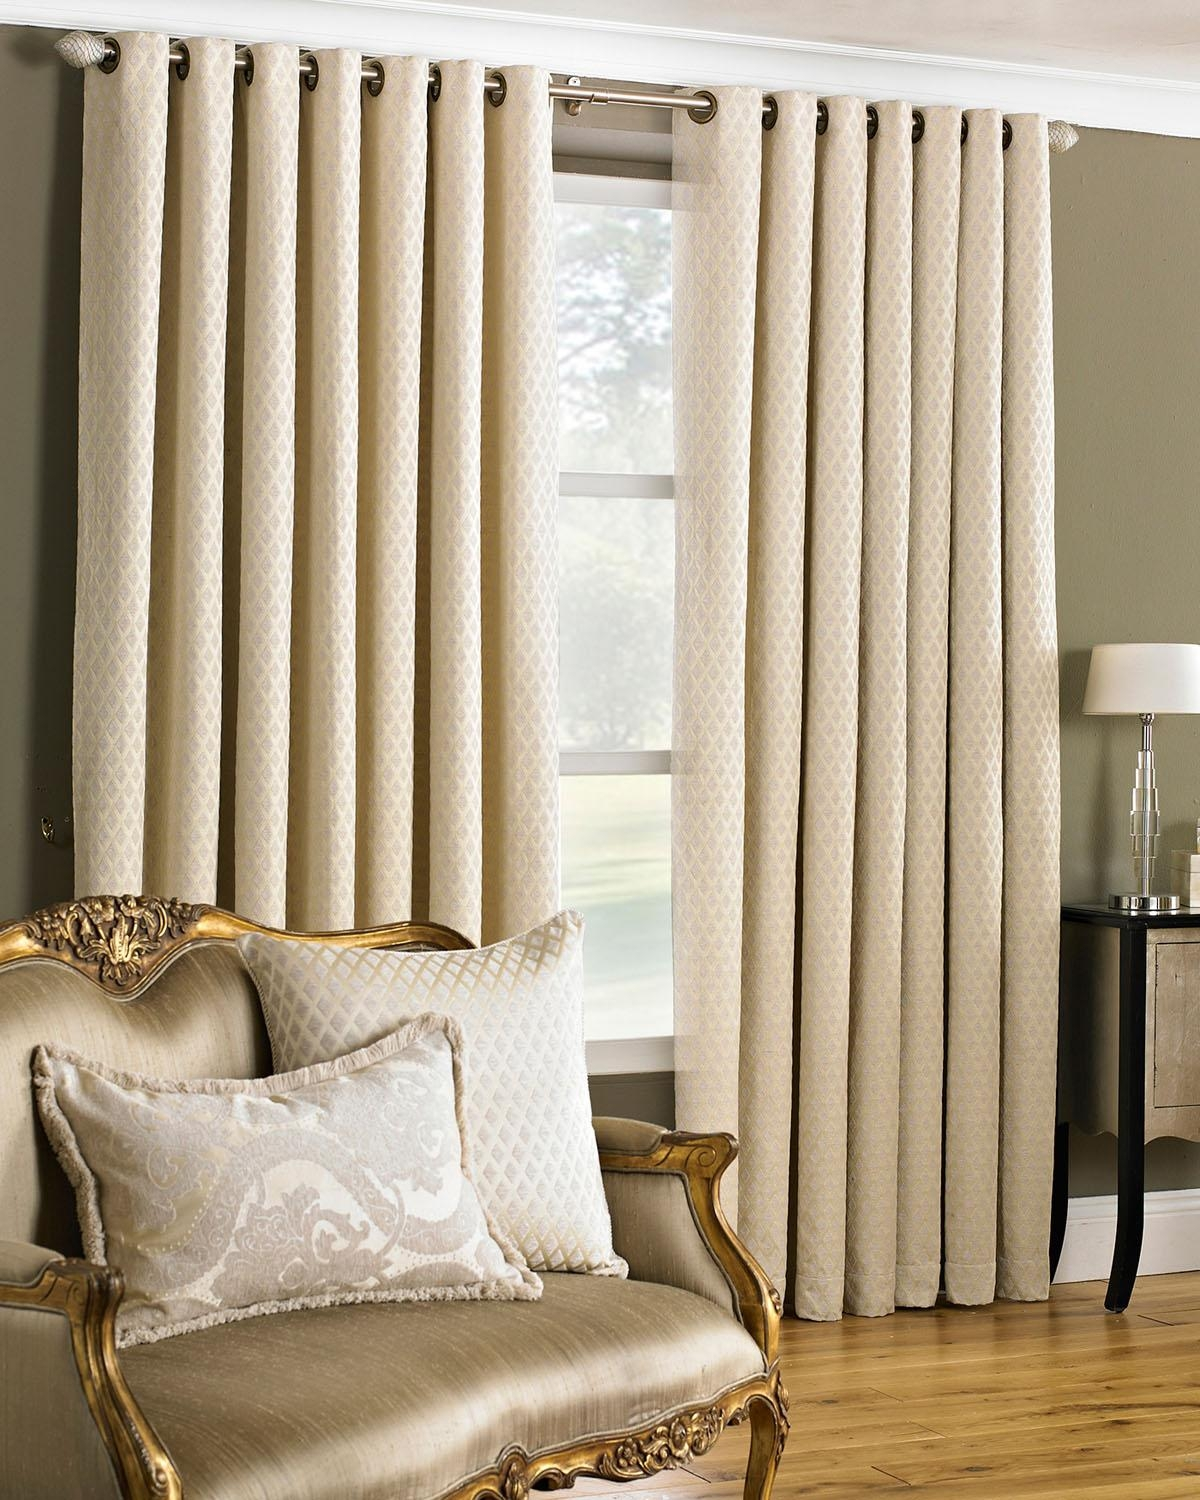 Devere Eyelet Curtains In Cream Free Uk Delivery Terrys Fabrics Pertaining To Lined Cream Curtains (Image 5 of 15)